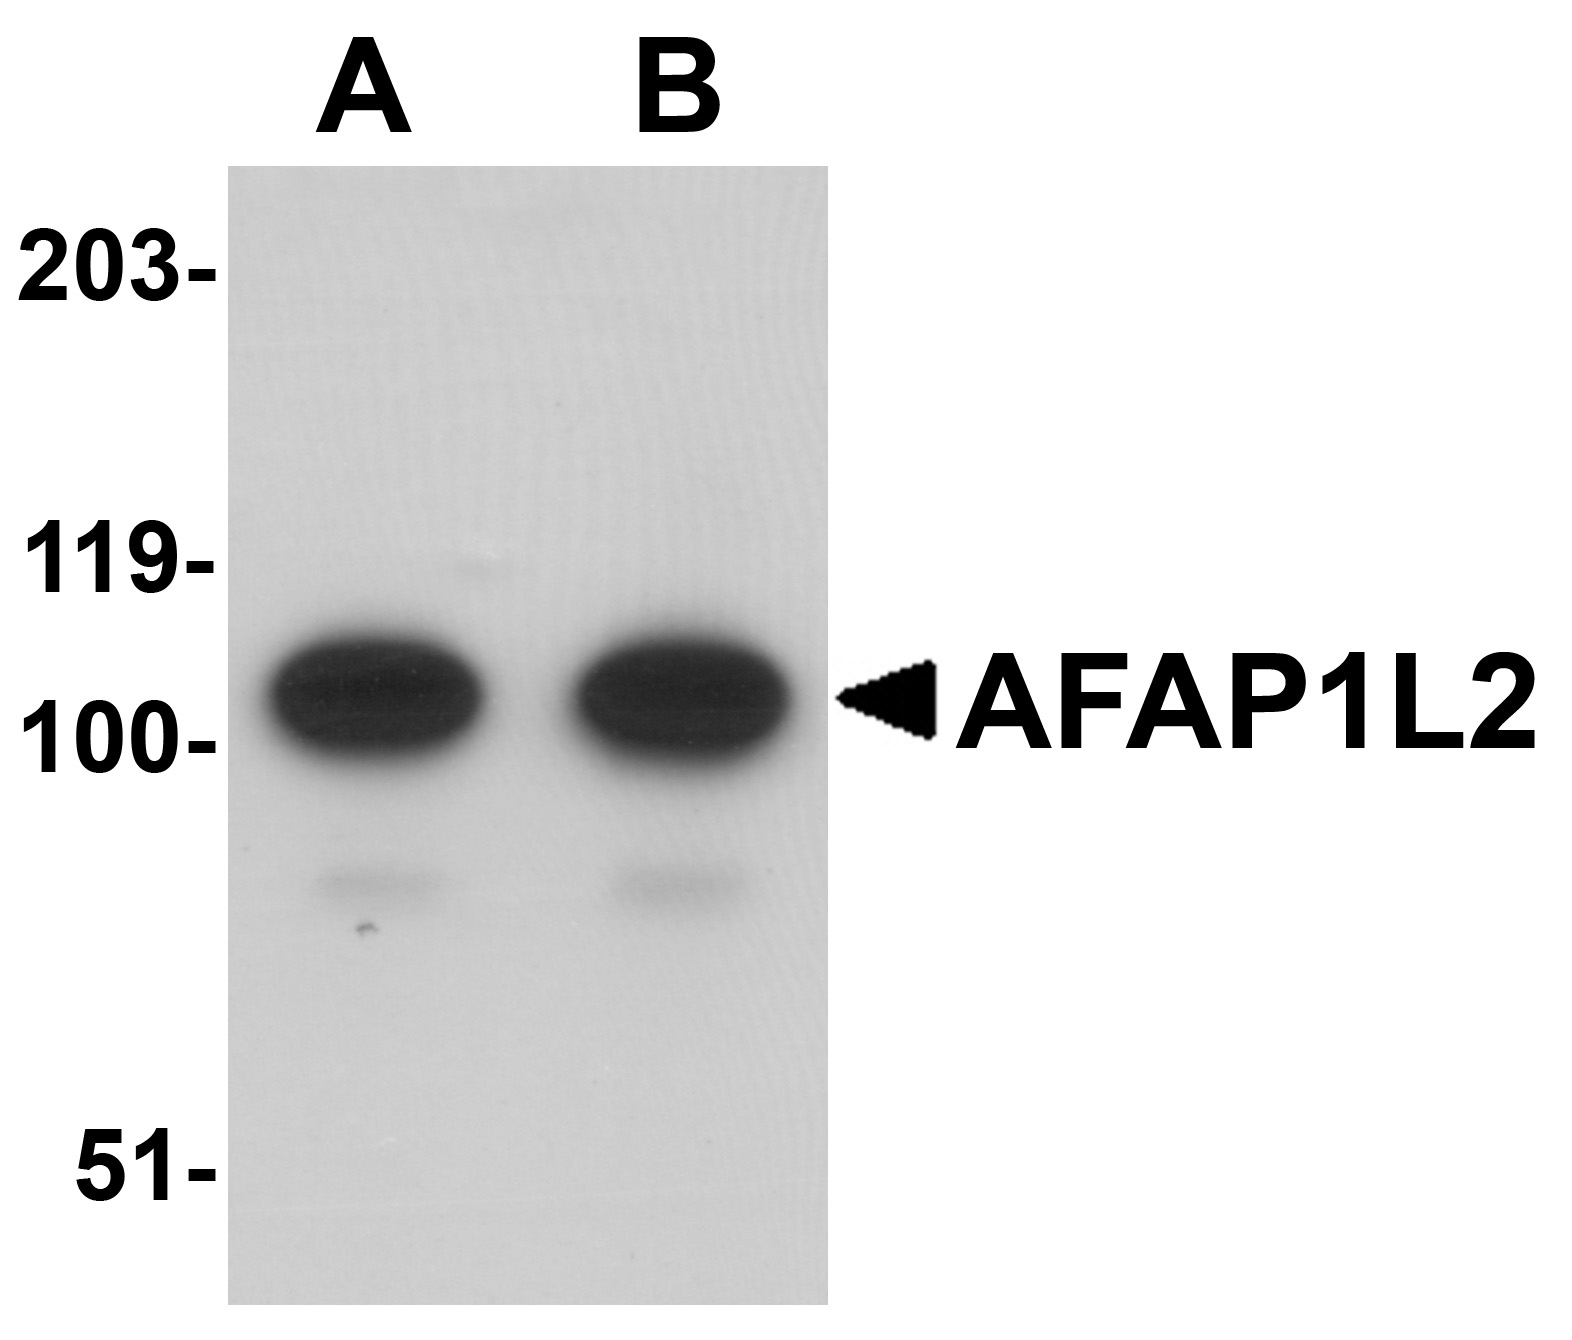 AFAP1L2 Antibody (OAPB00906) in Mouse Liver cells using Western Blot